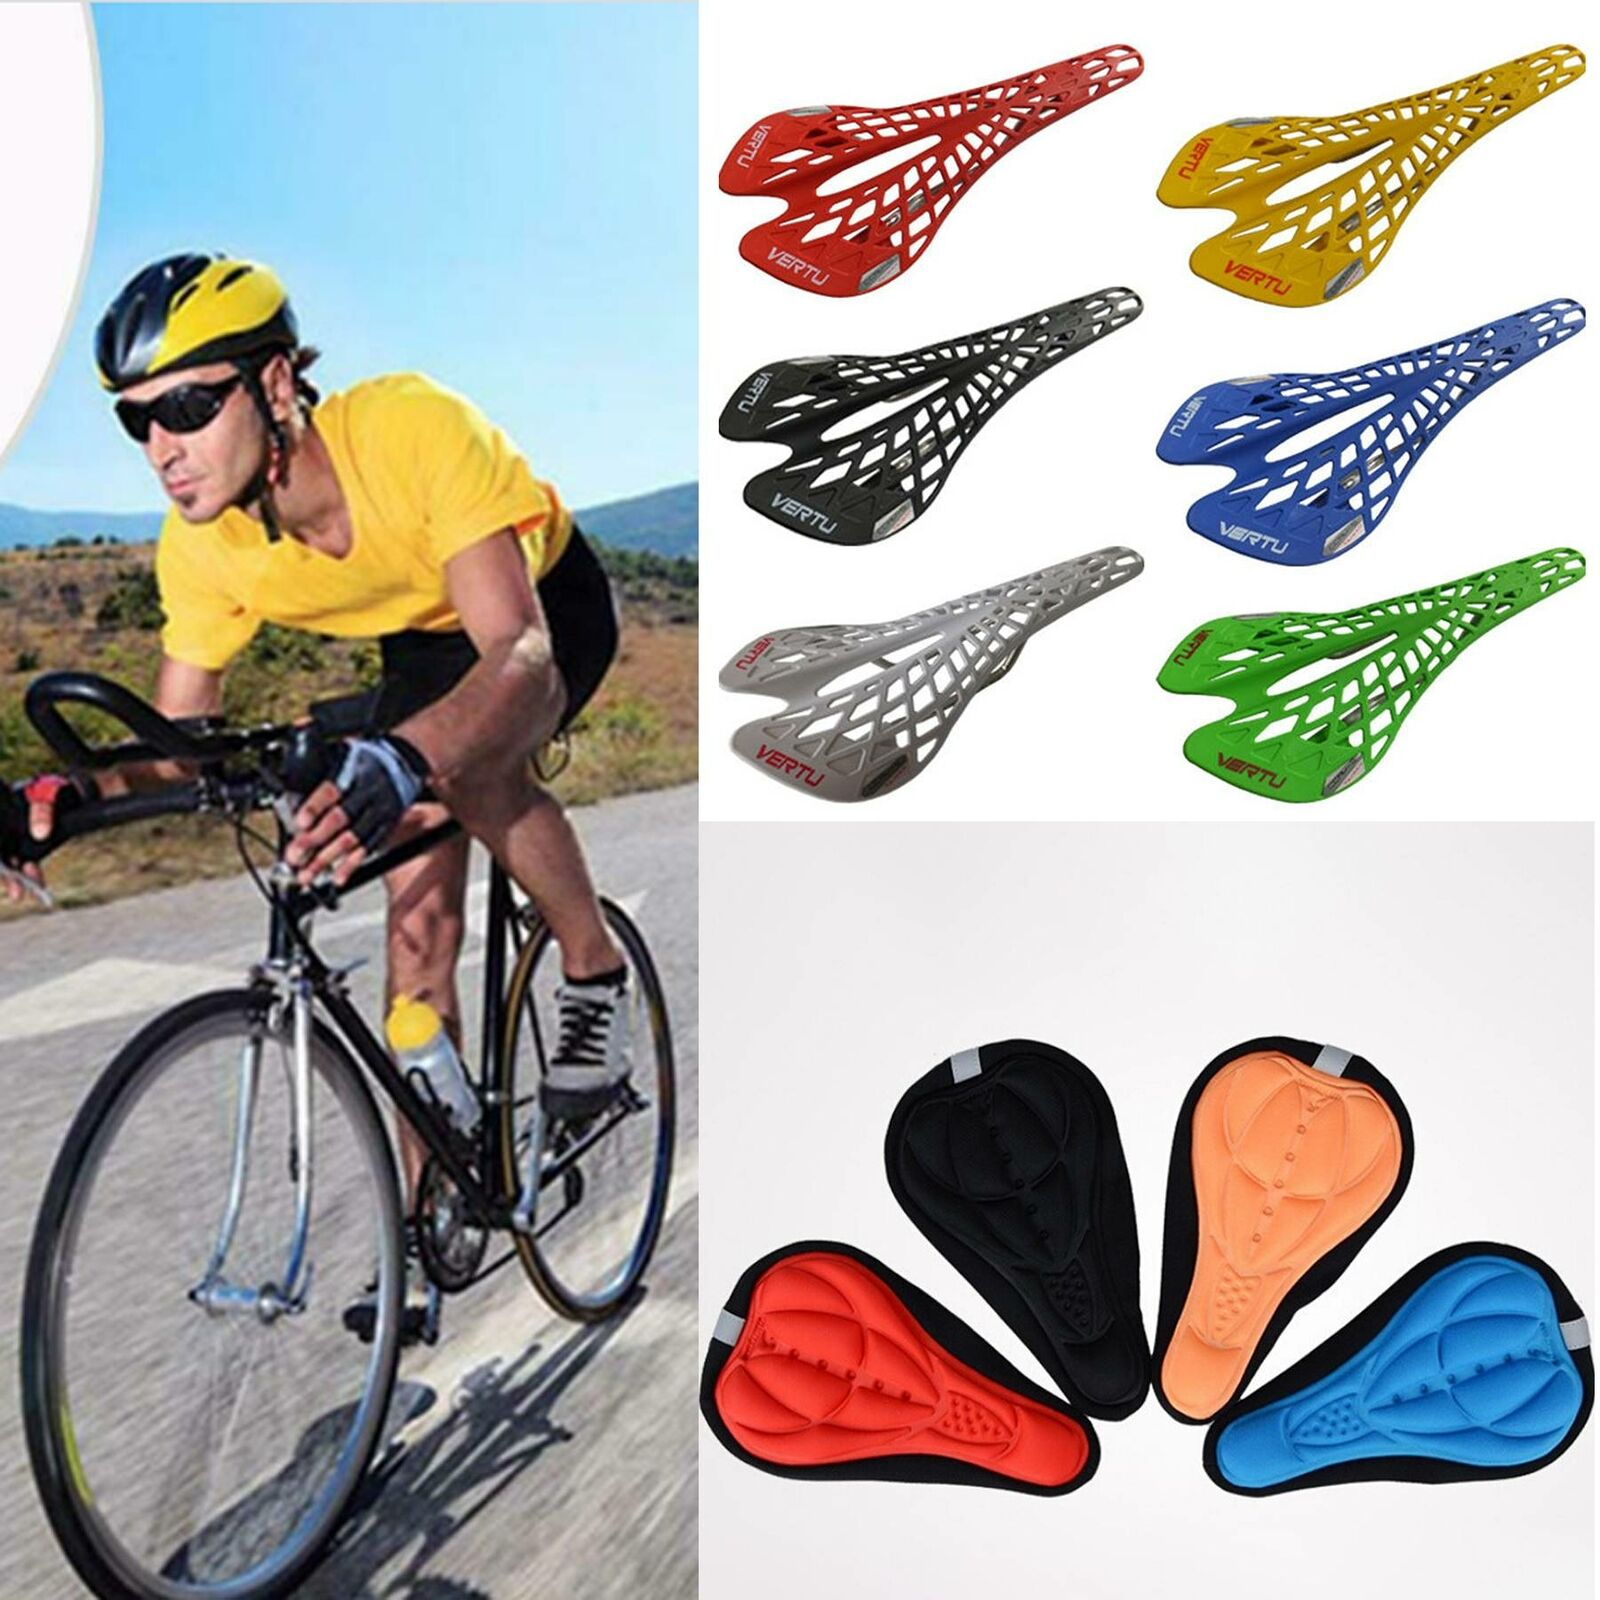 3D Silicone Gel Thick Soft Bicycle Bike Cycling Saddle Pad Cushion Seat NW G5T8